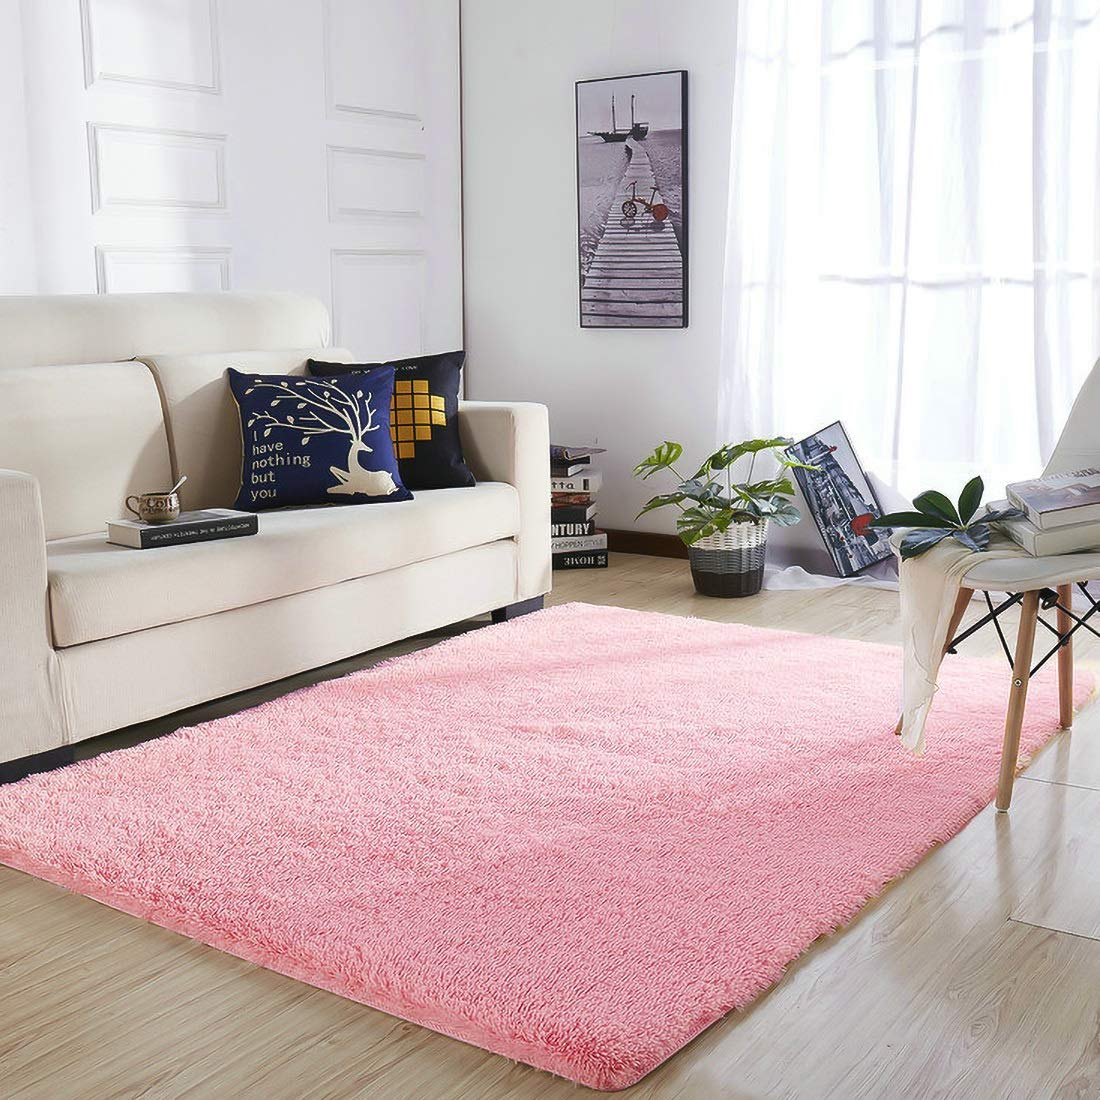 YOH Super Soft Area Rugs(3rd Generation) Fluffy Shaggy Rugs for Bedroom Living Room Kids Room Nursery Home Decor 4 Feet by 5.3 Feet,Pink